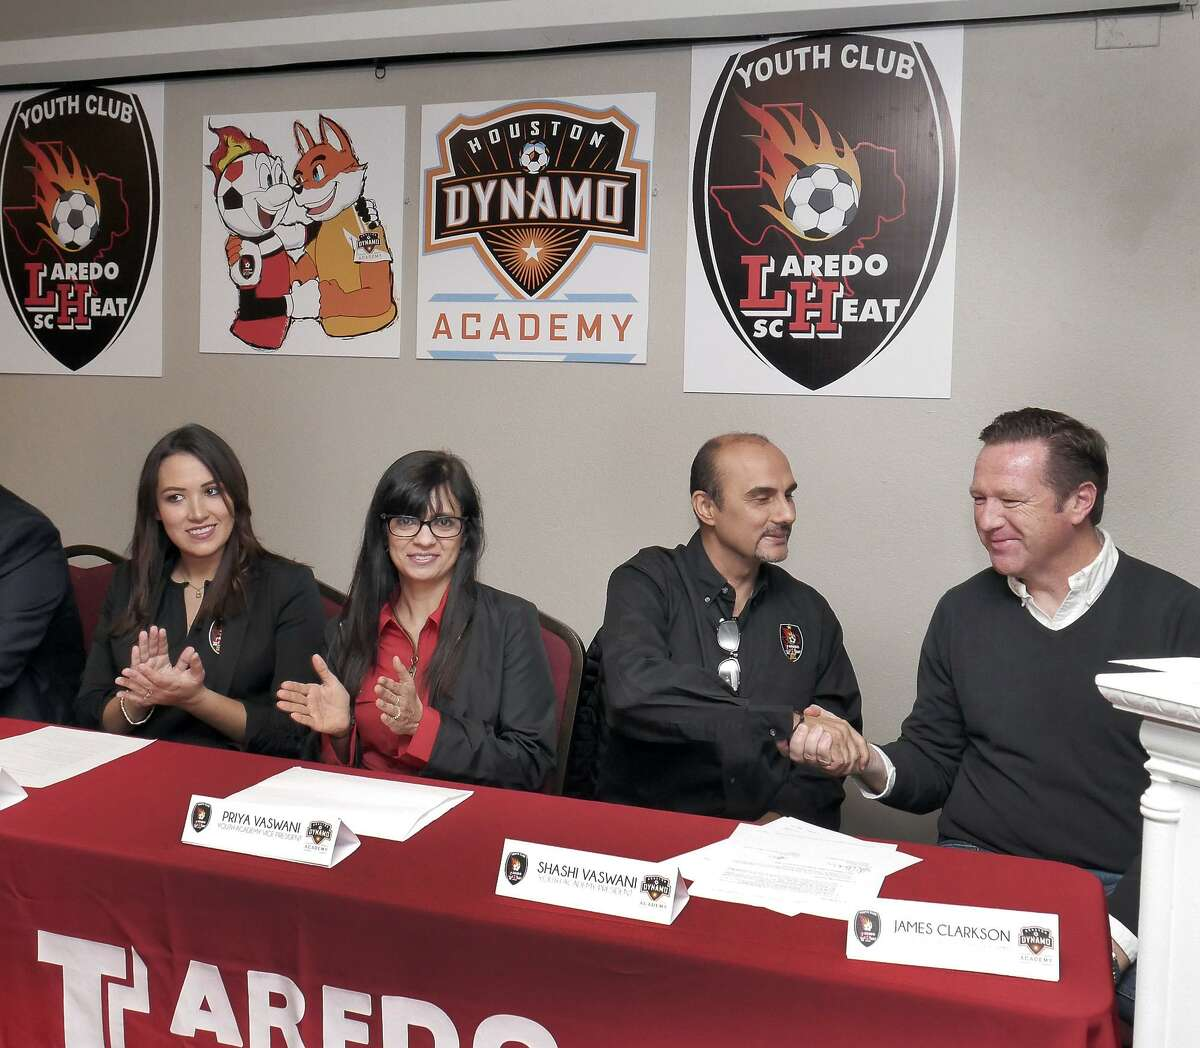 Laredo Heat Youth Soccer Club and Academy President Shashi Vaswani shakes hands with James Clarkson, MLS Houston Dynamo Youth Academy President after signing a partnership agreement between the MLS Houston Dynamo Youth and the Laredo Heat Youth Soccer Club and Academy at a press conference Wednesday, February 7, 2018, at La Quinta on Loop 20. Laredo Heat Youth Academy Player Liaison Edith Ortiz and Academy Vice-President Priya Vaswani look on.